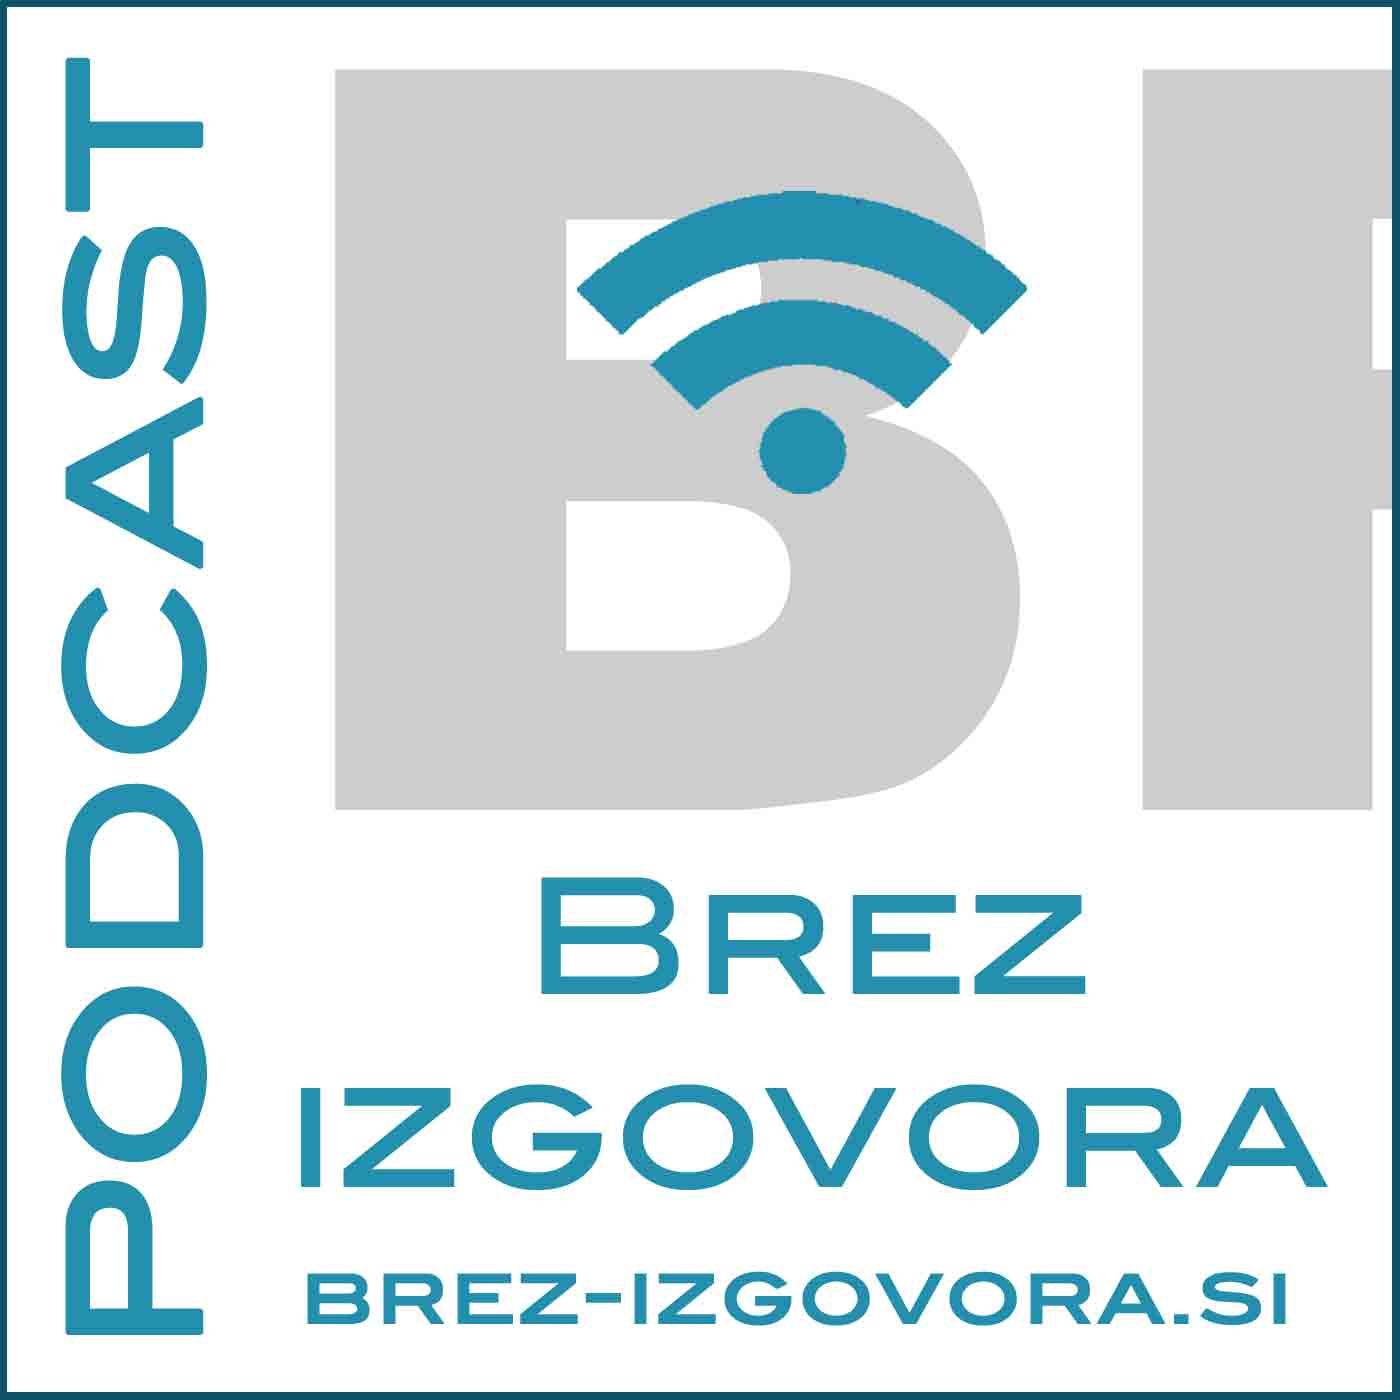 Podcast BREZ IZGOVORA – Podcast.si